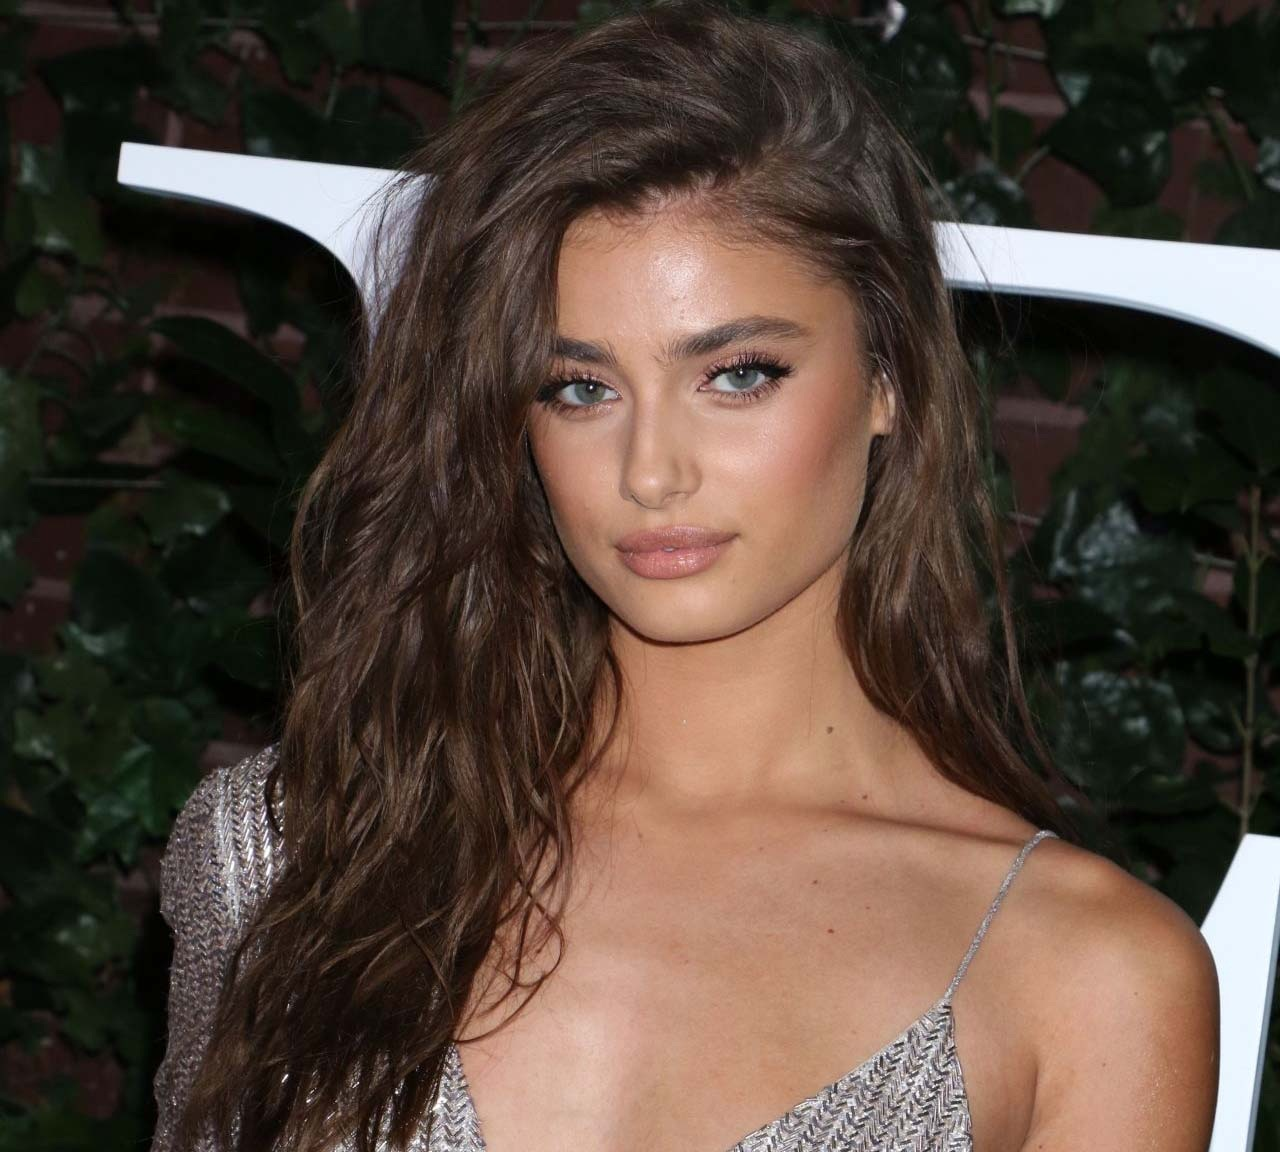 Majestic Taylor Hill Free Hd Photo Download